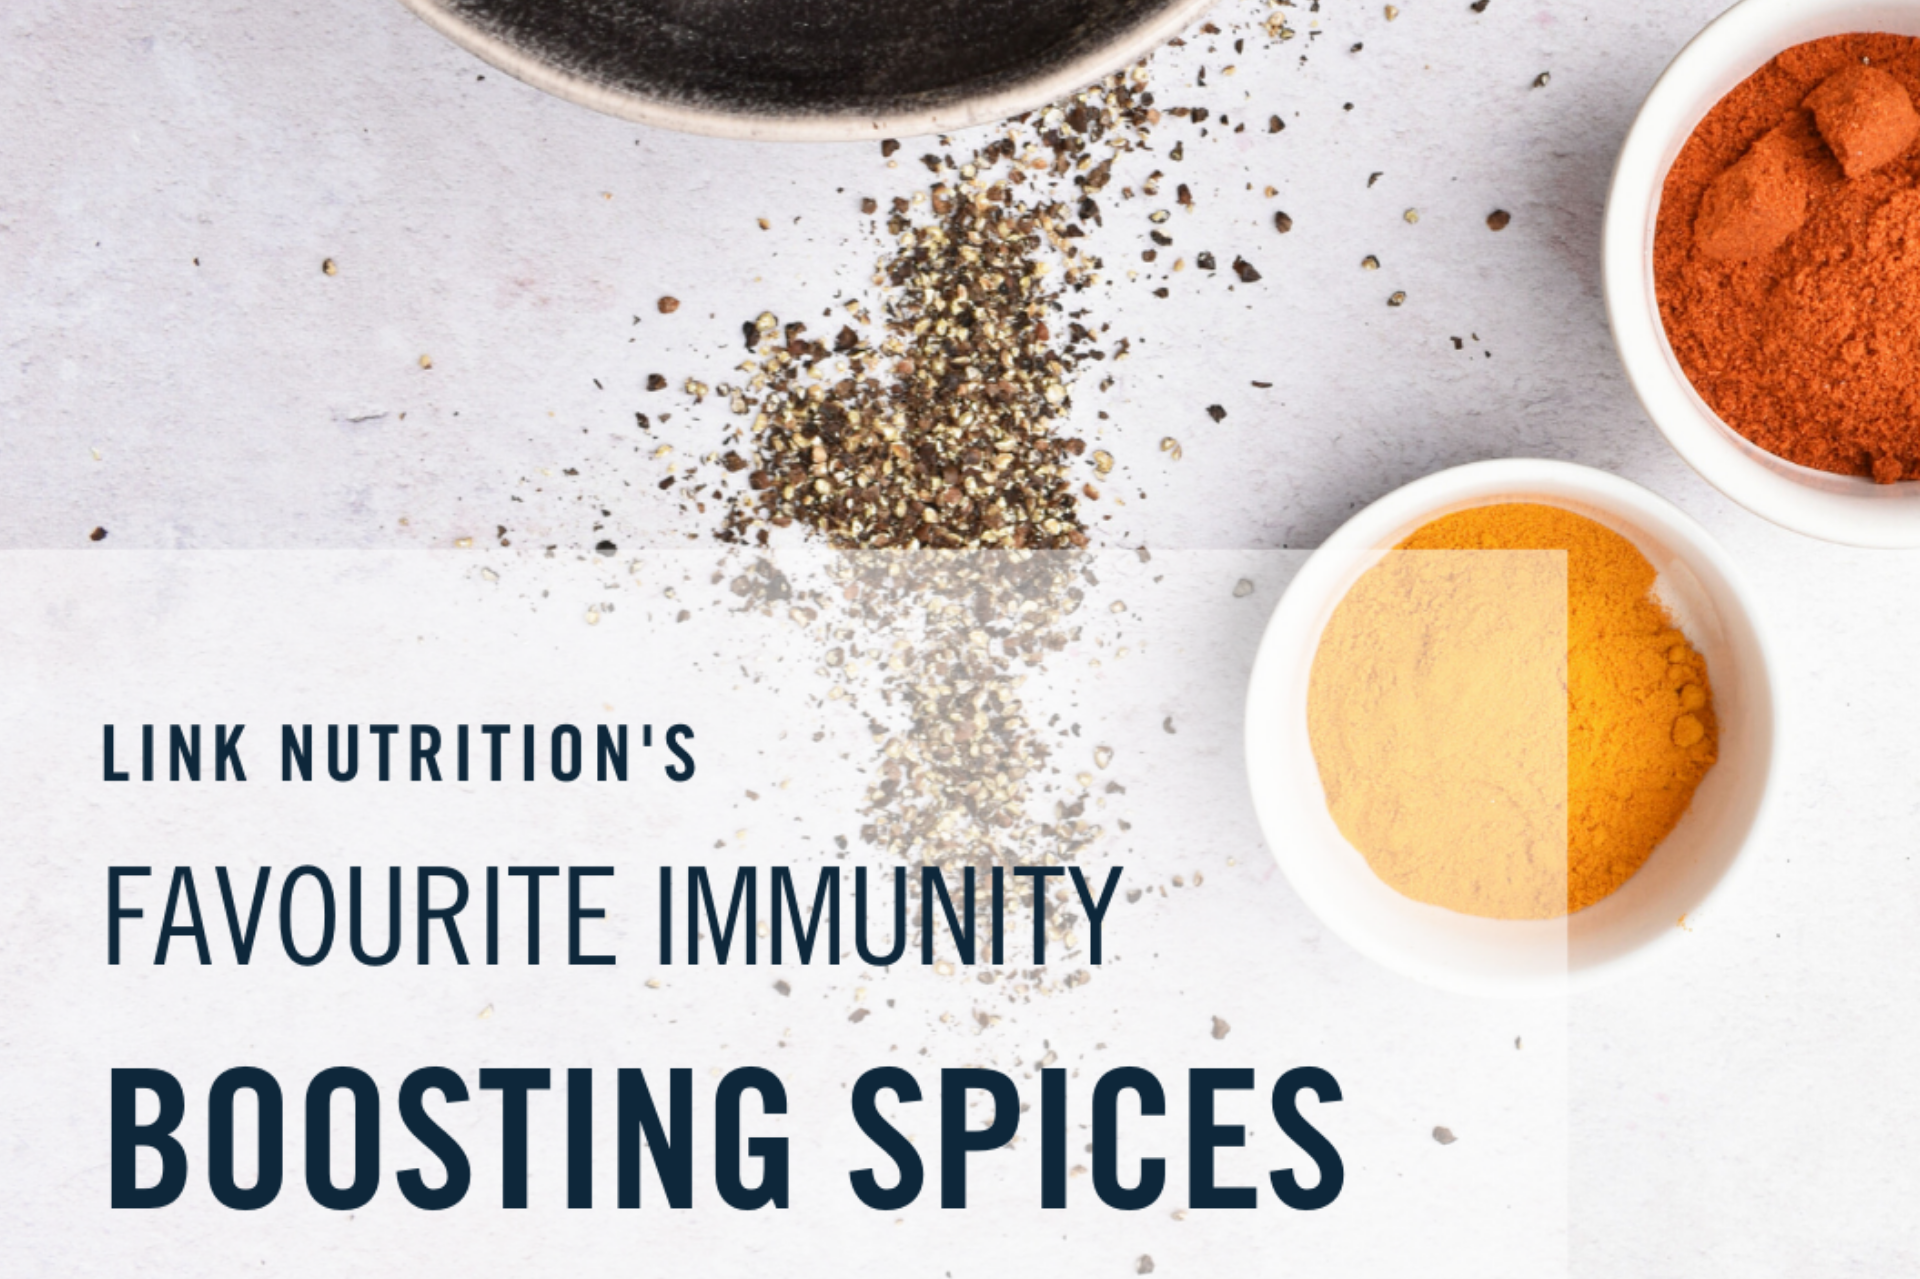 Our favourite immune-boosting festive spices